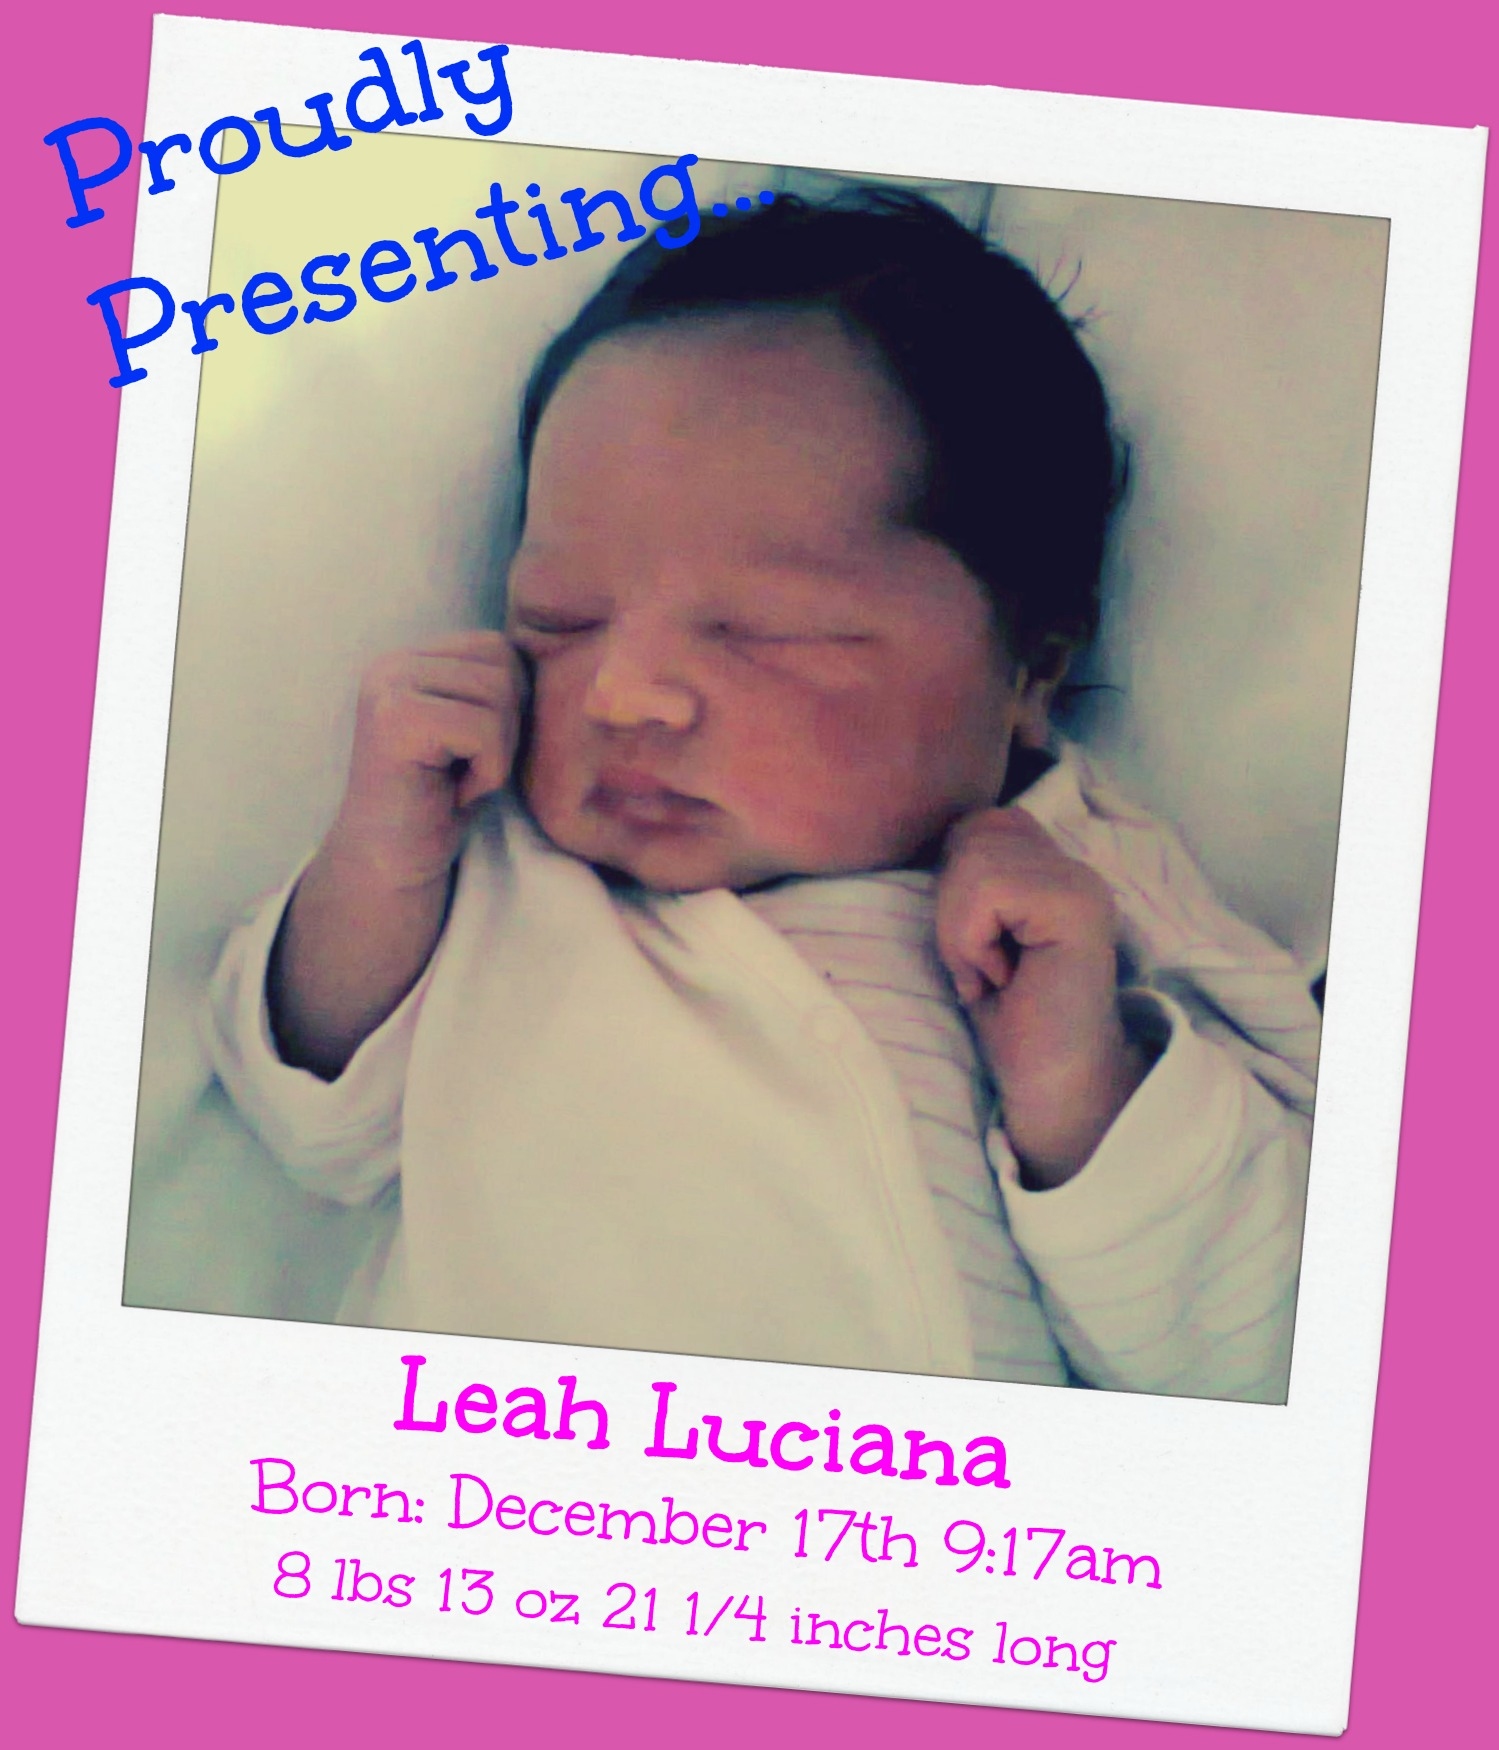 Contractions 5 Minutes Apart: Announcing The Arrival Of Leah Luciana!